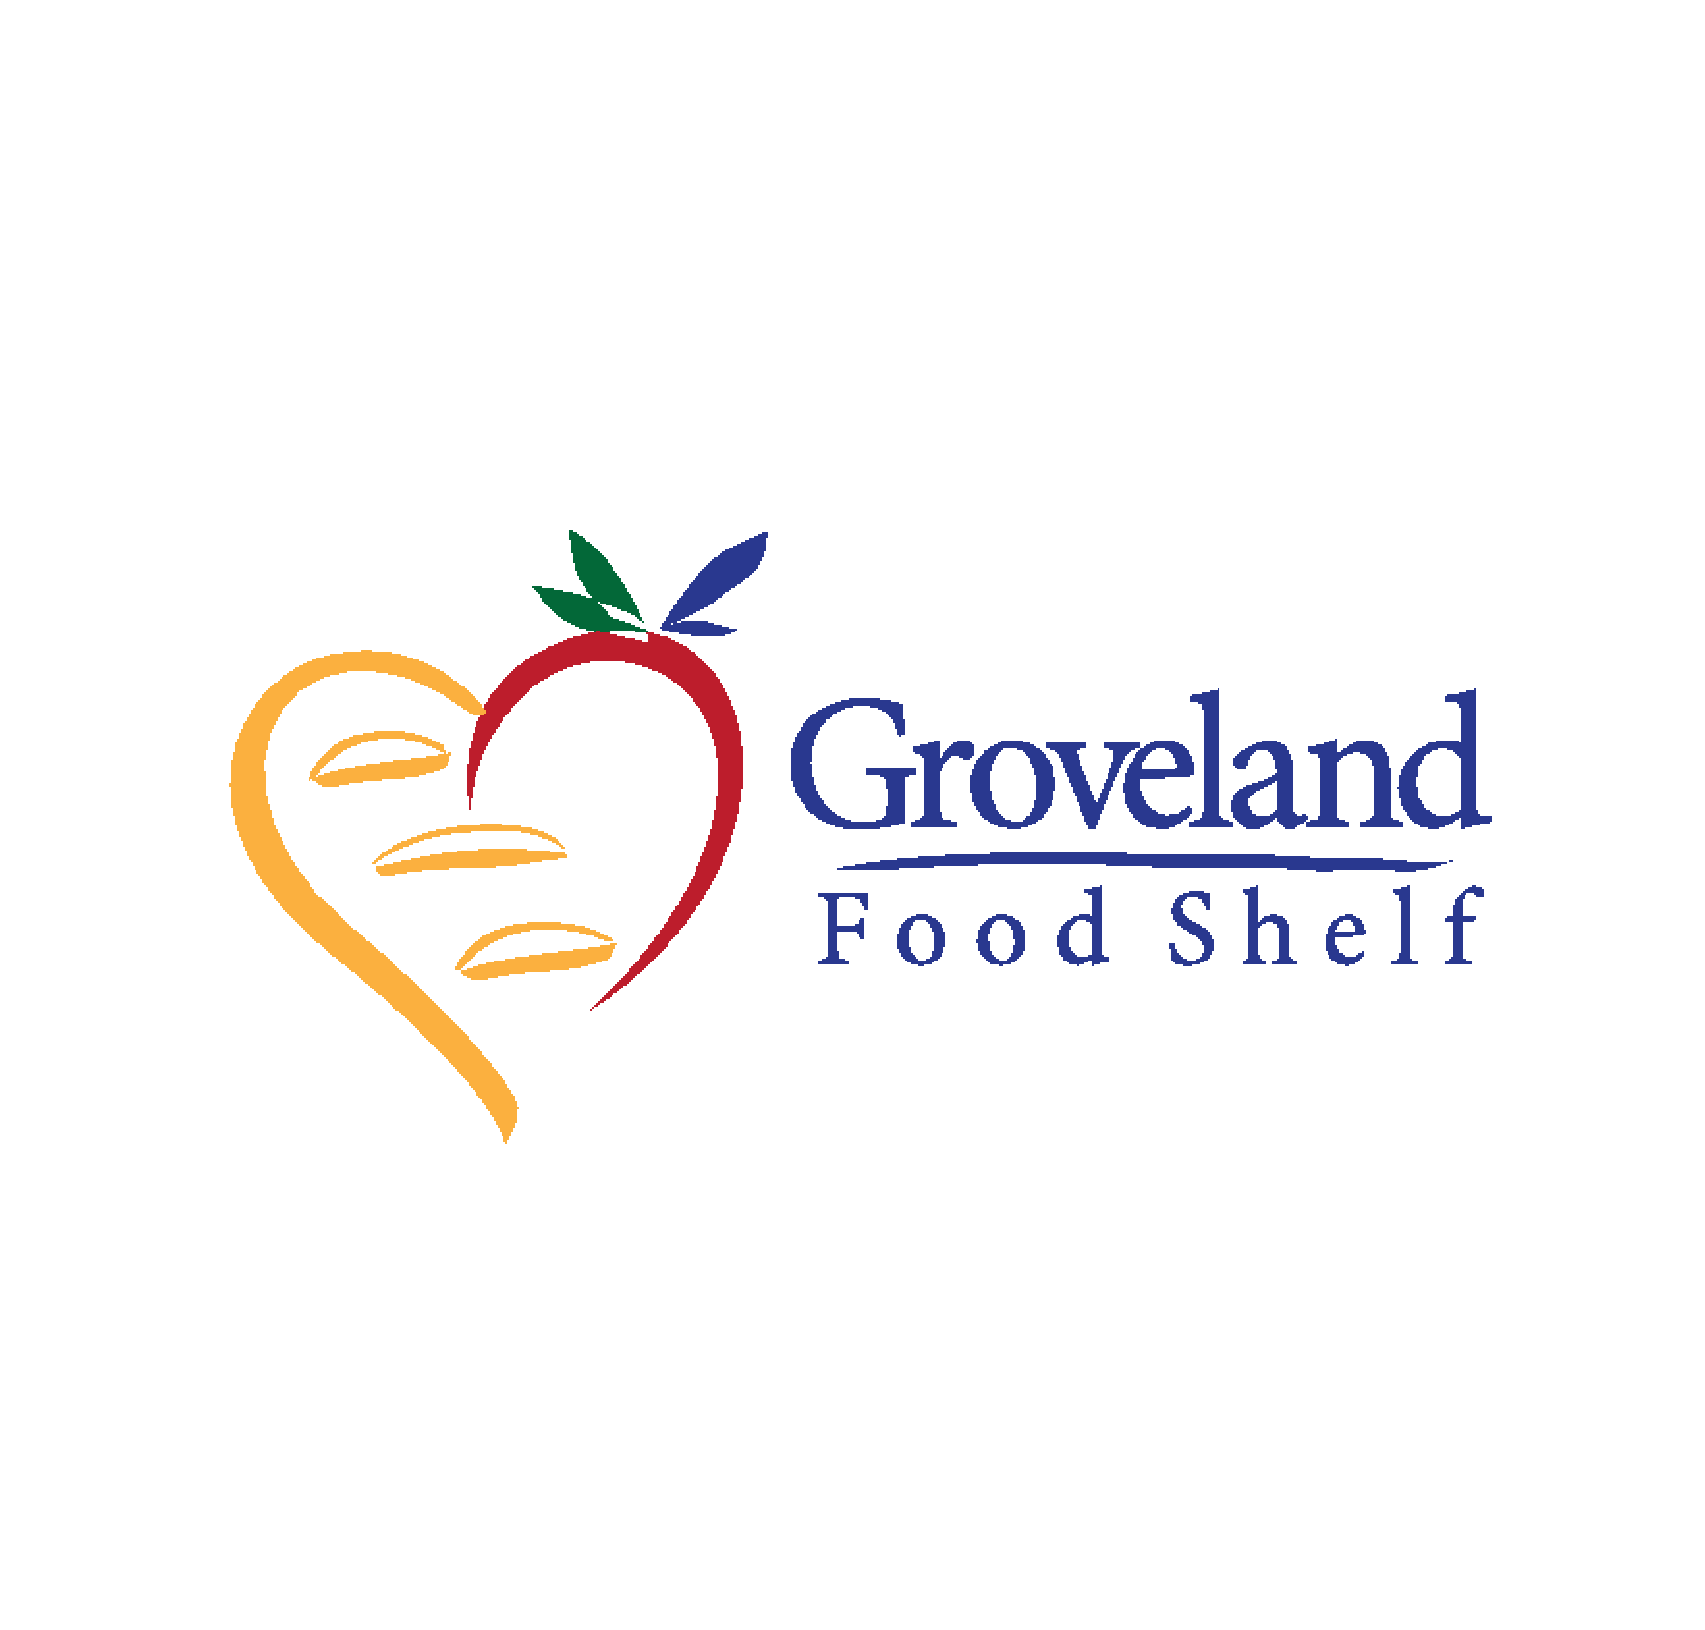 Groveland Food Shelf - Groveland Food Shelf is an emergency food shelf in Minneapolis. Today we were able to give them 50 warm winter hats!